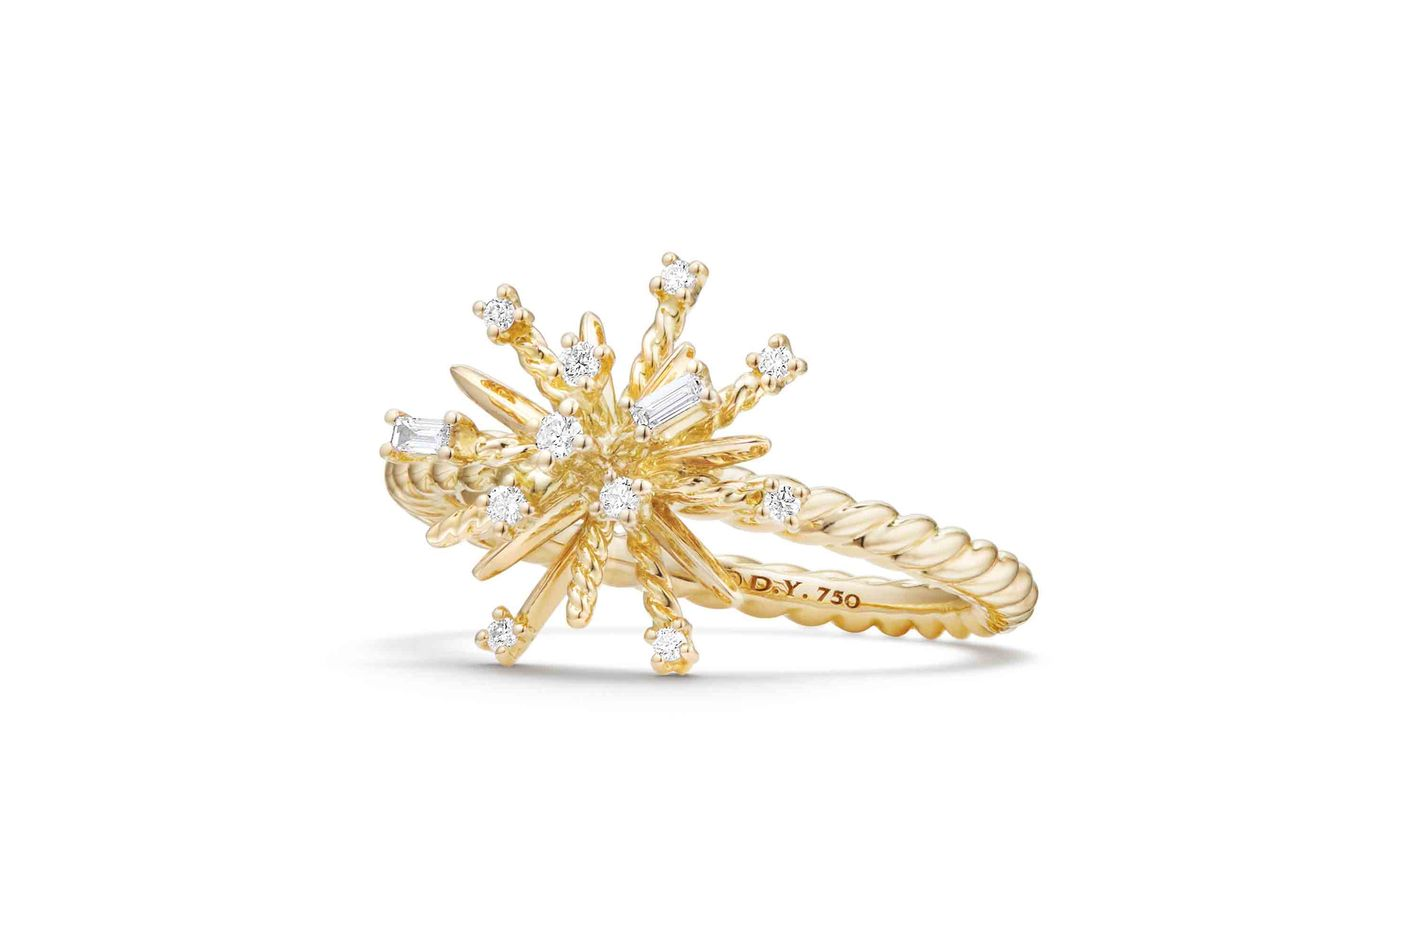 David Yurman Supernova Ring